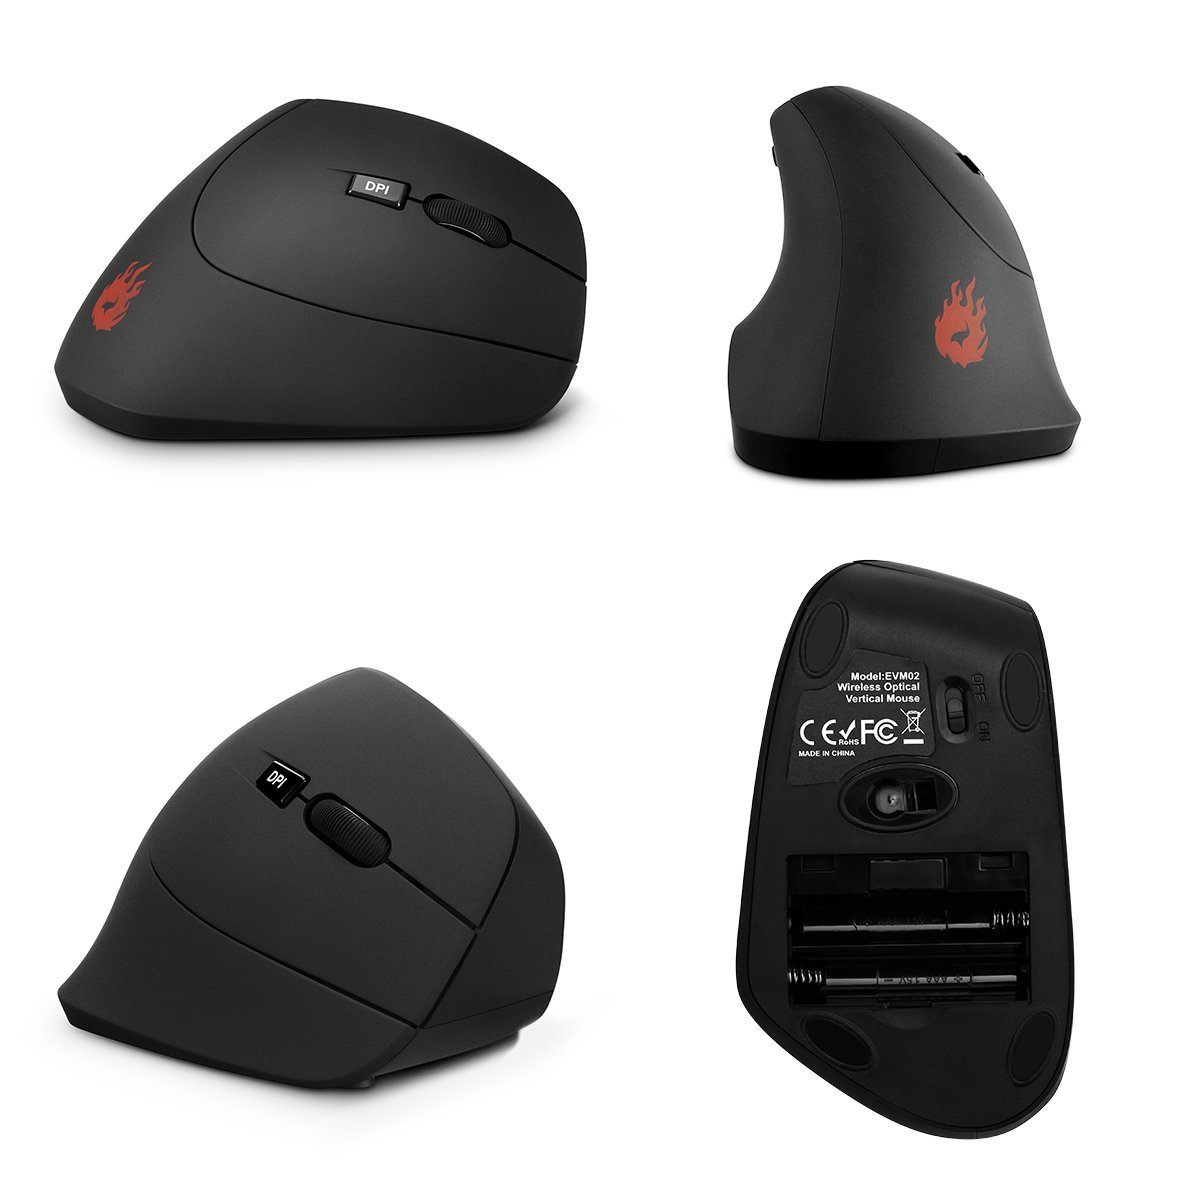 e3f58913ceb Velocifire Wireless Ergonomic Vertical Mouse USB 2.4G Adjustable DPI 800 /  1200 /1600 with 6 Buttons Black [Upgraded Version] EVM02 - Walmart.com